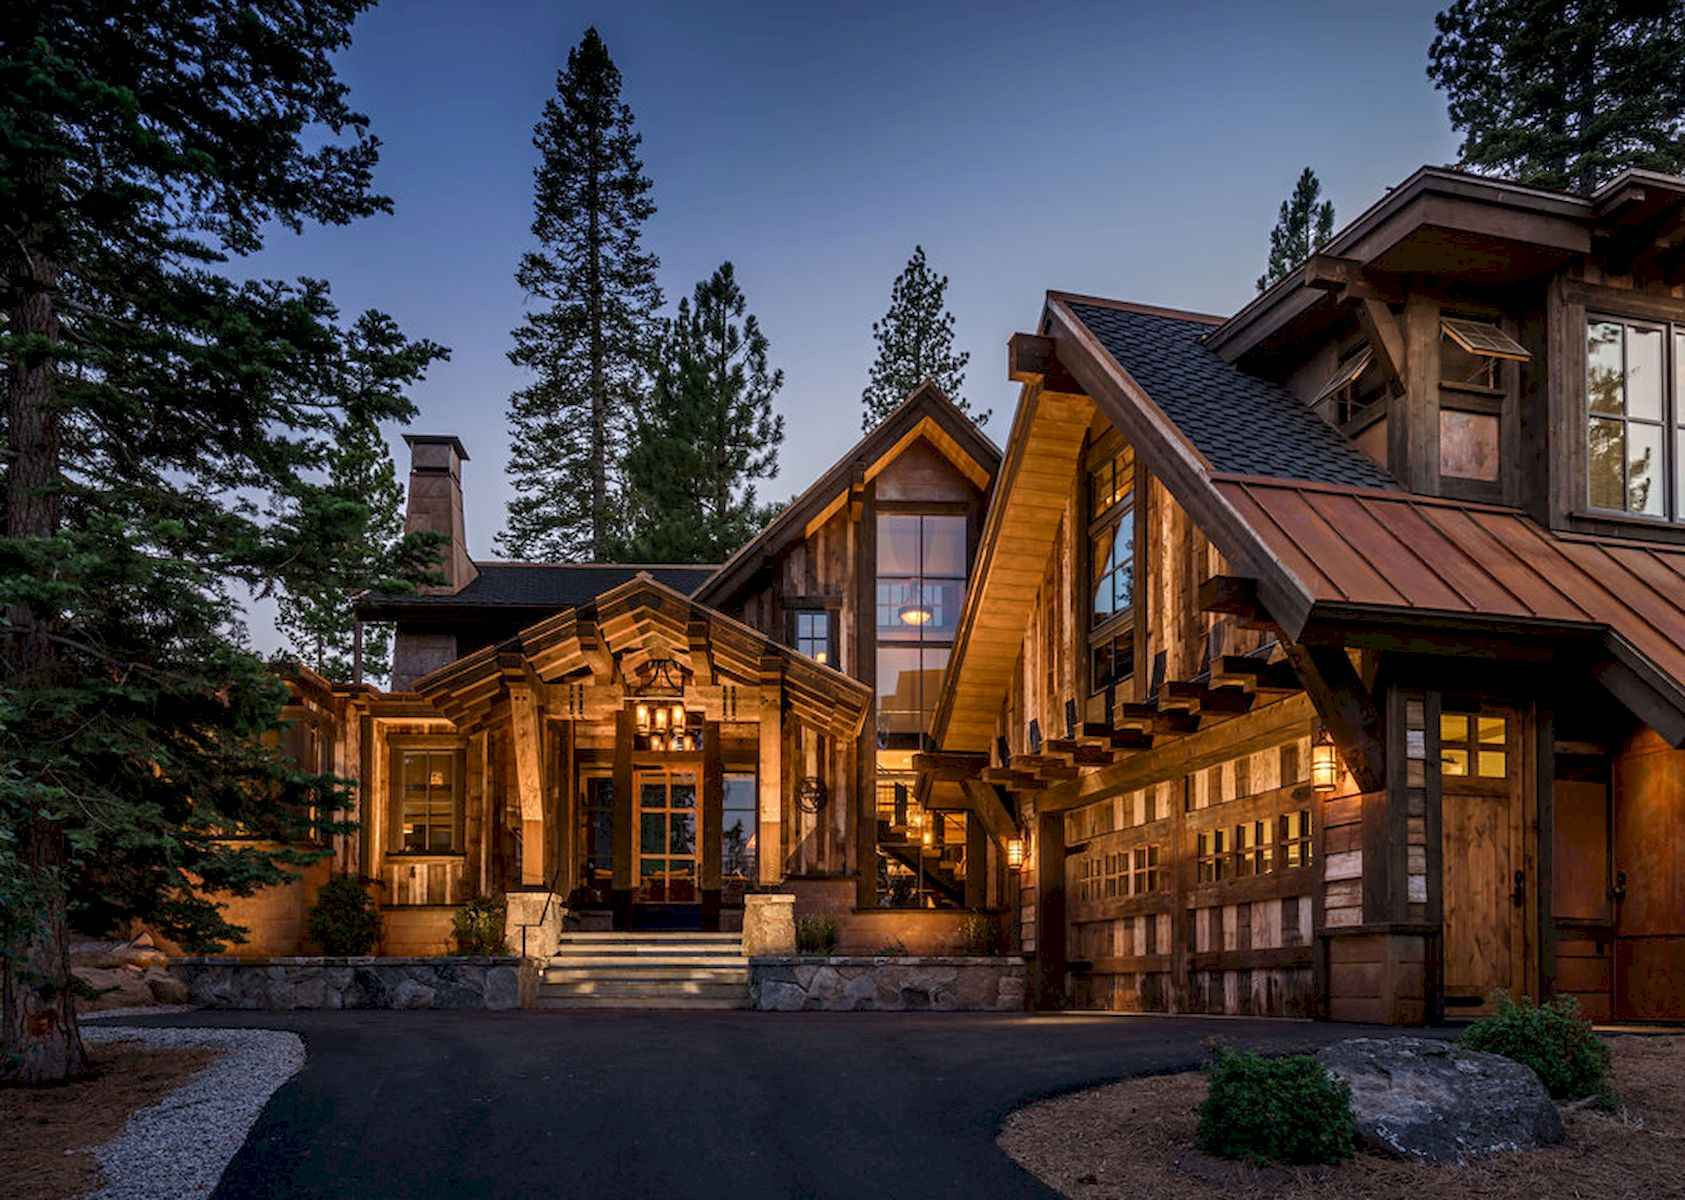 60 Rustic Log Cabin Homes Plans Design Ideas And Remodel (52)